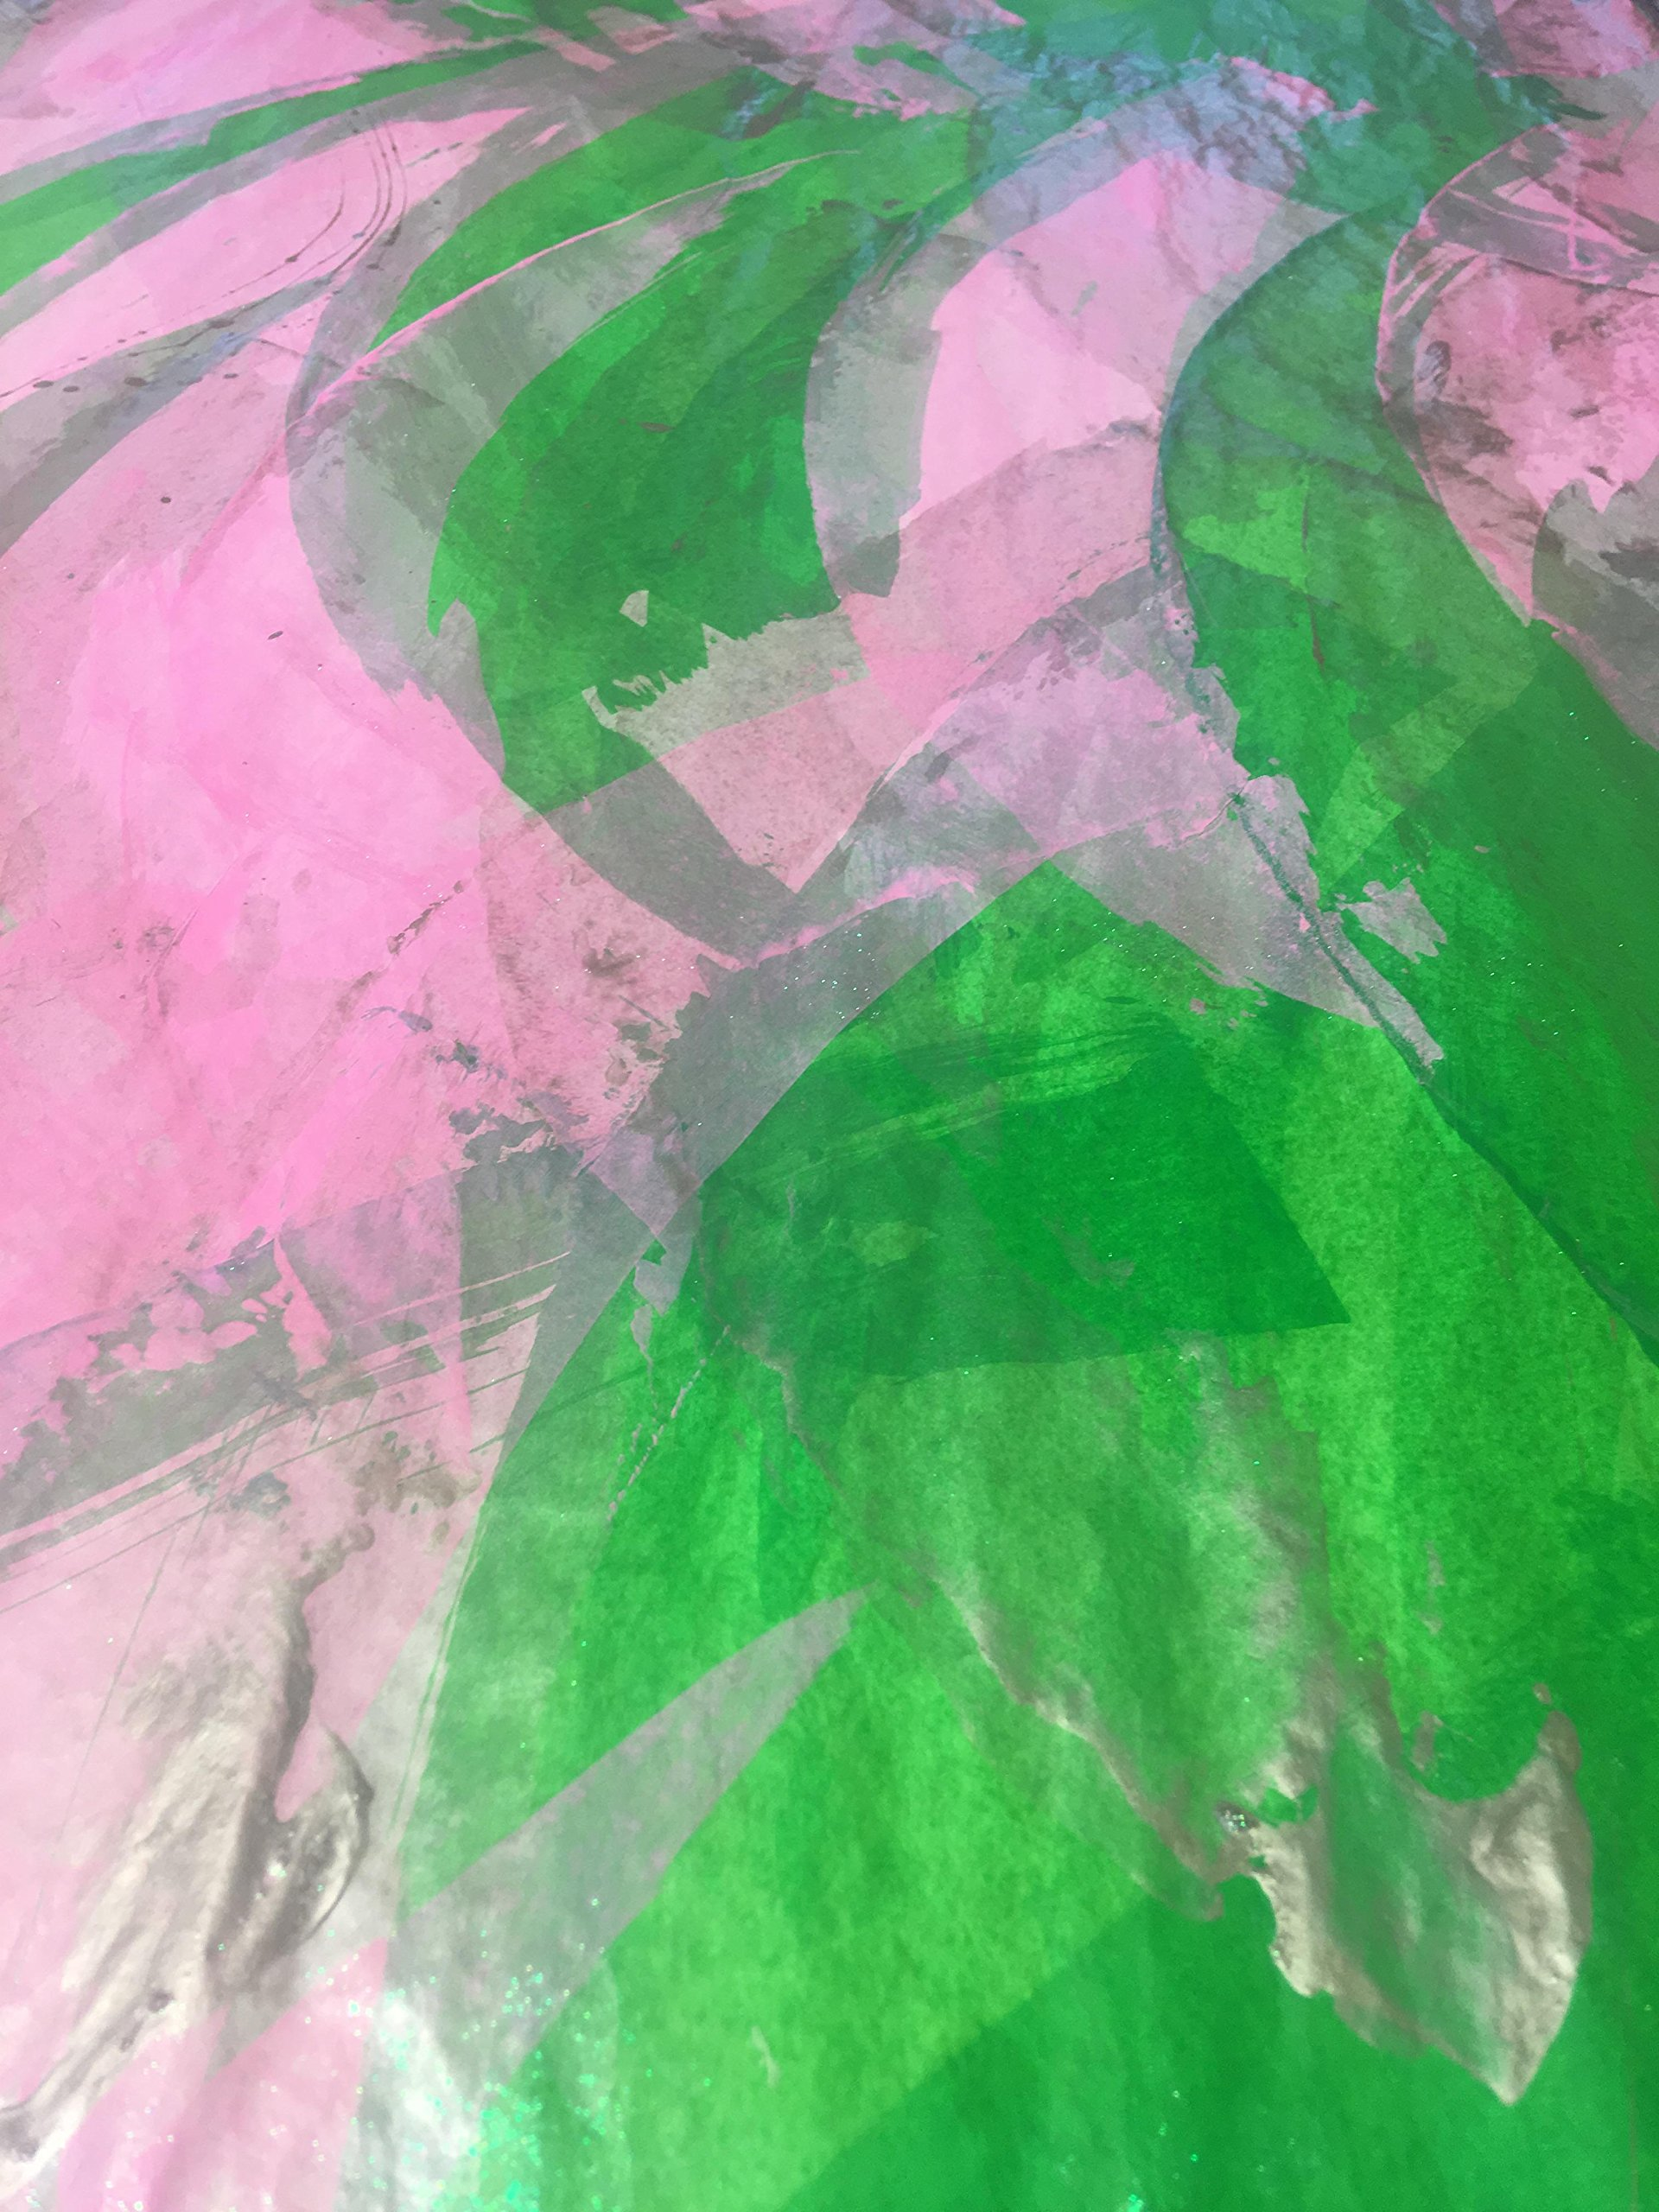 PINK/GREEN/GOLD PAINTED PAPERS 1 sheet 26''X 60'' by PAINTED PAPERS Hand Painted Gift Wrap/Design Papers-Made in the USA